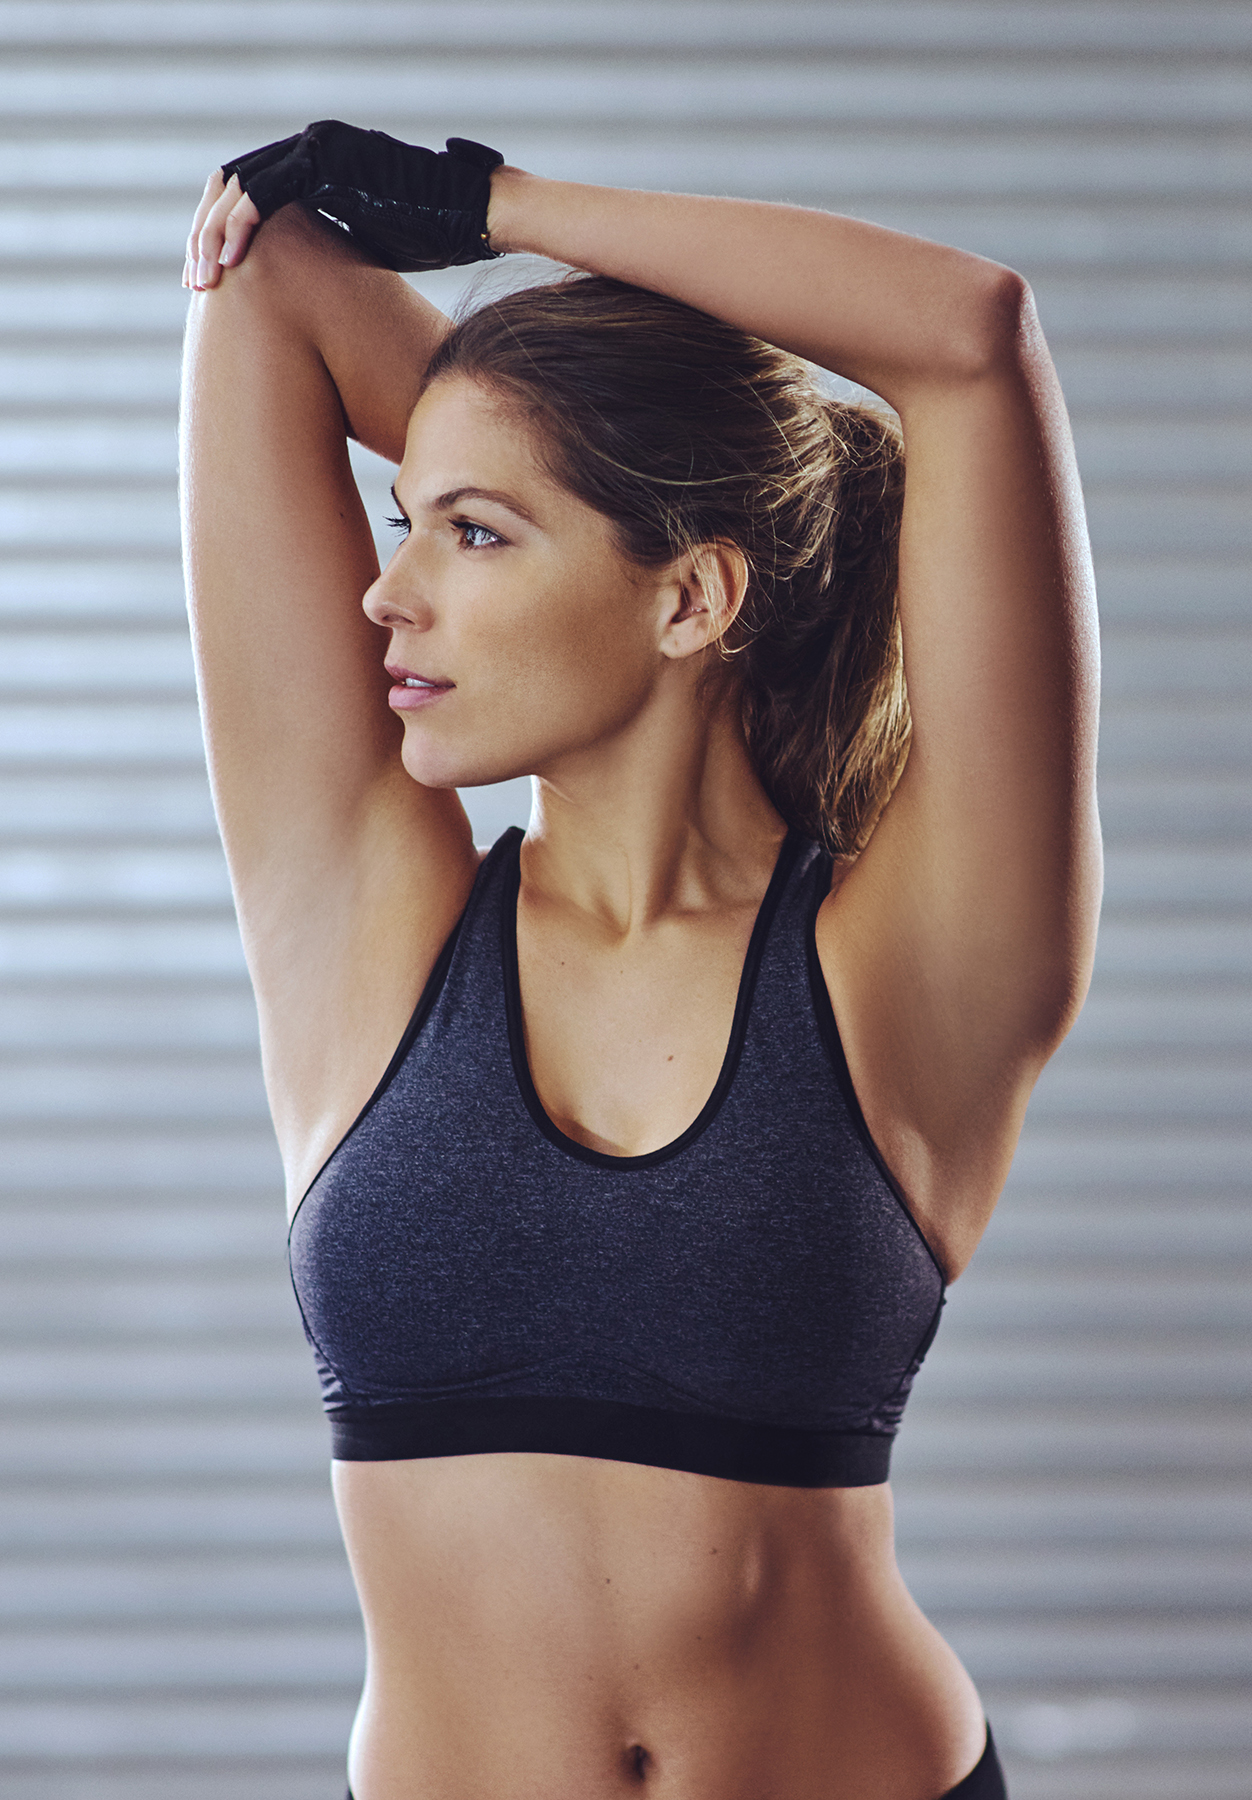 Woman working out in sports bra